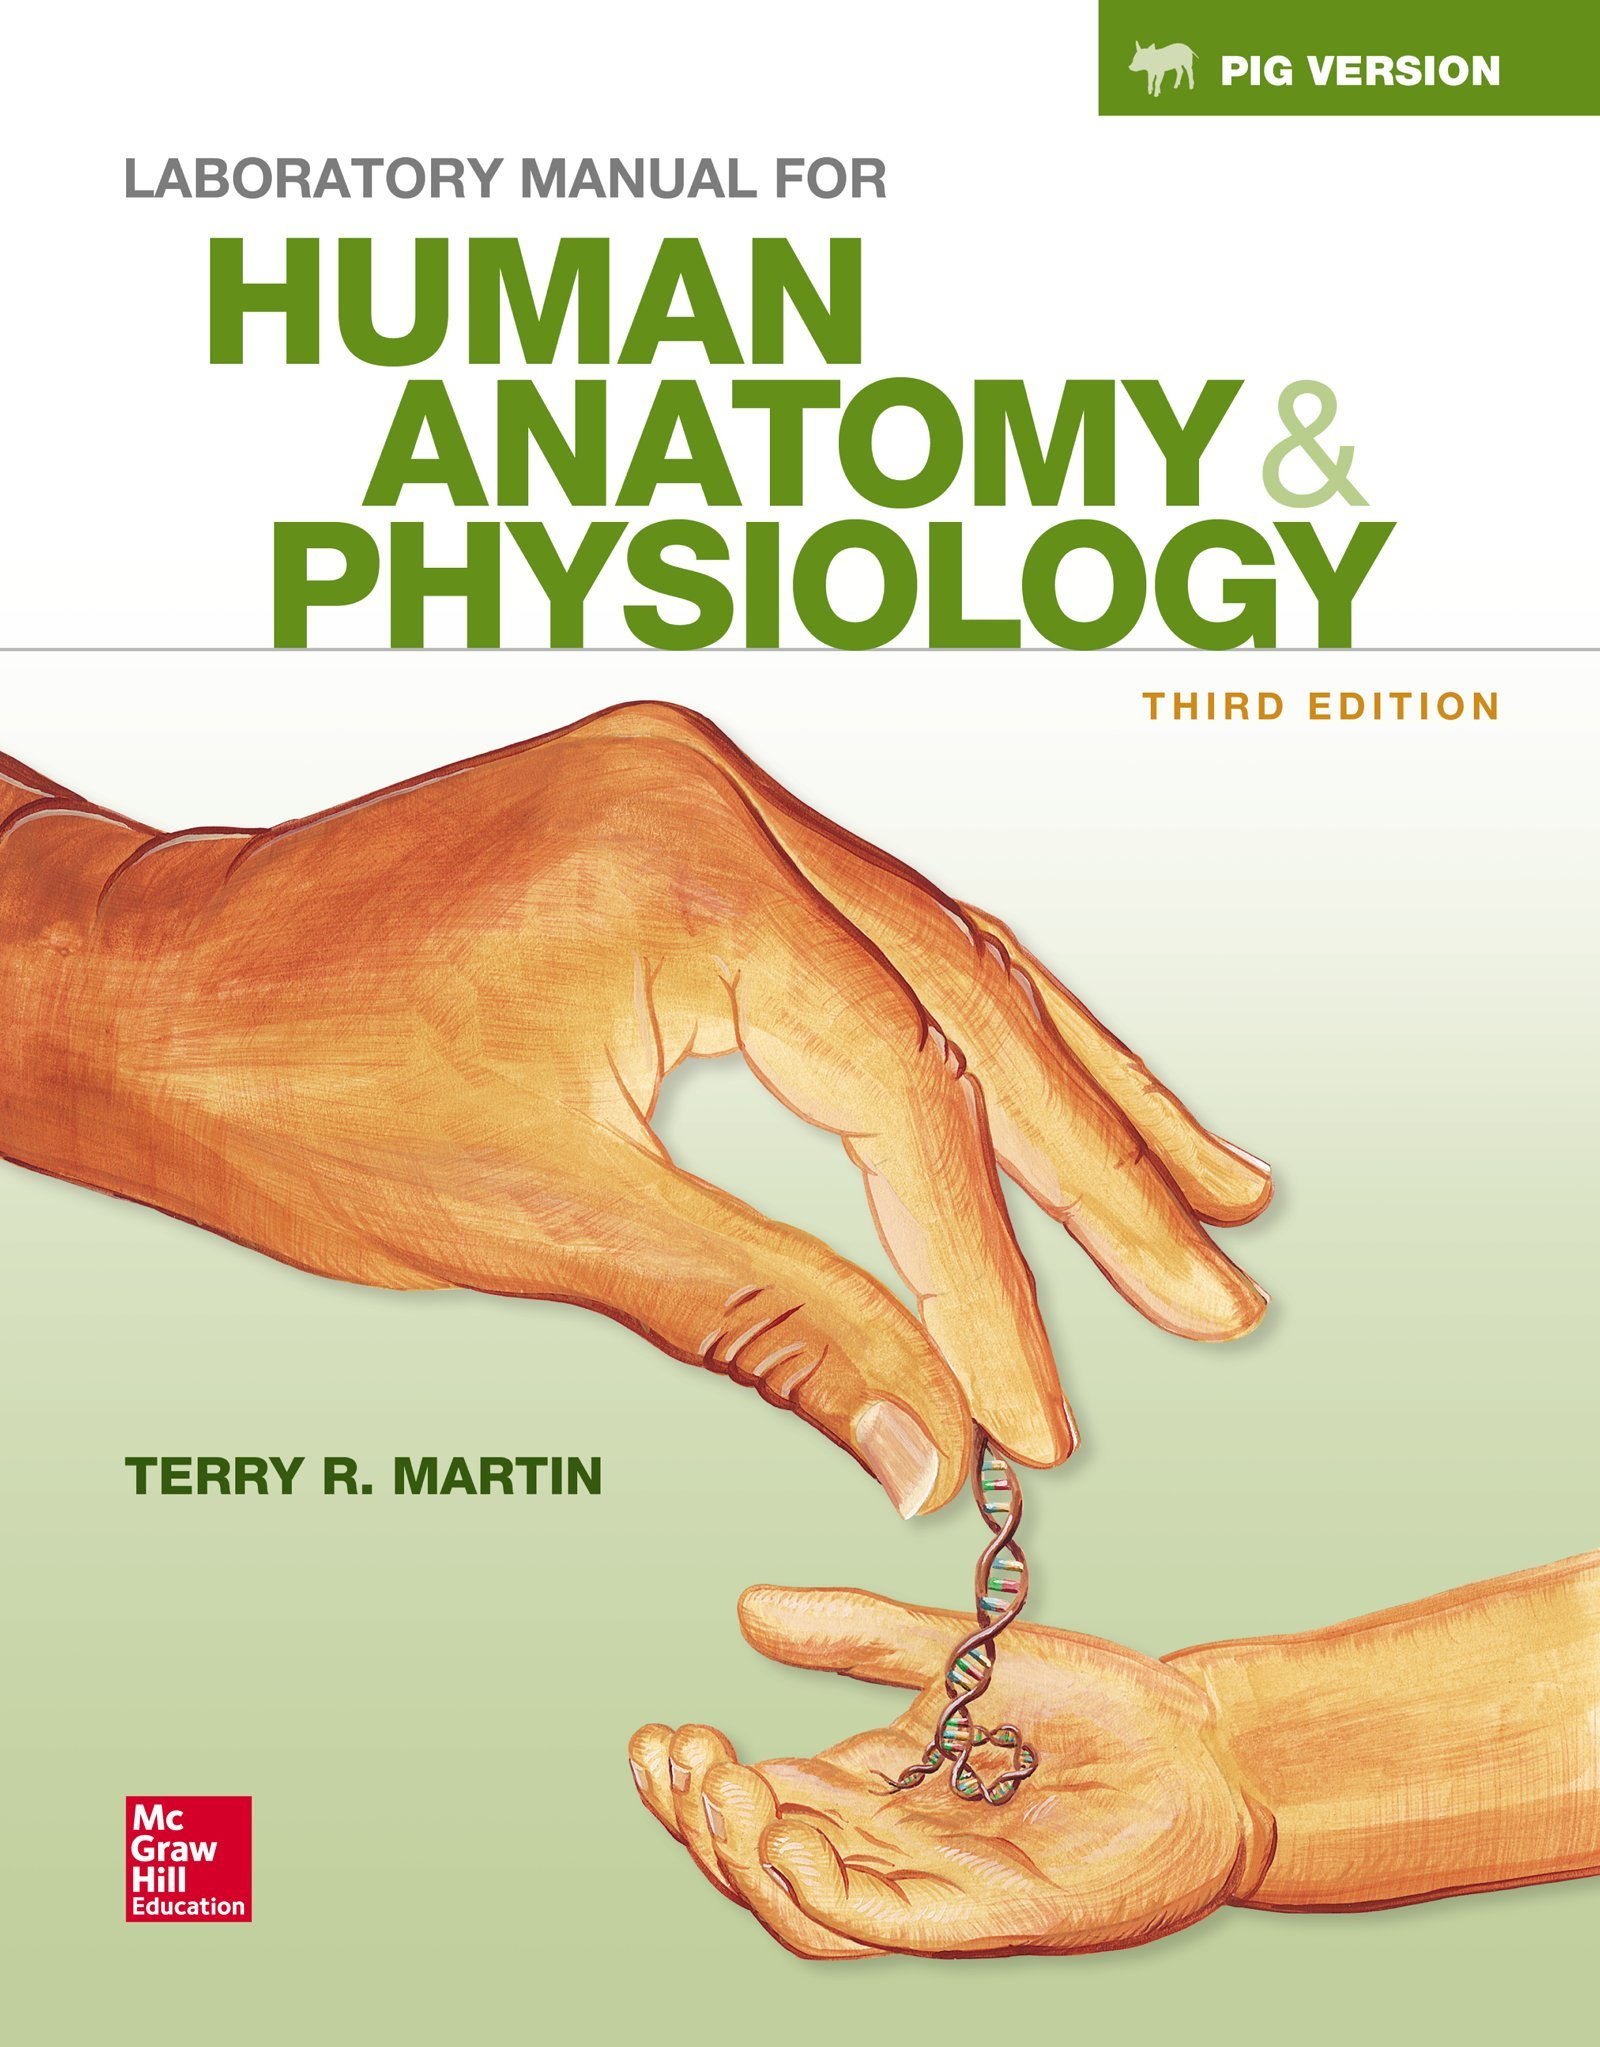 Laboratory Manual for Human Anatomy & Physiology Fetal Pig Version ...